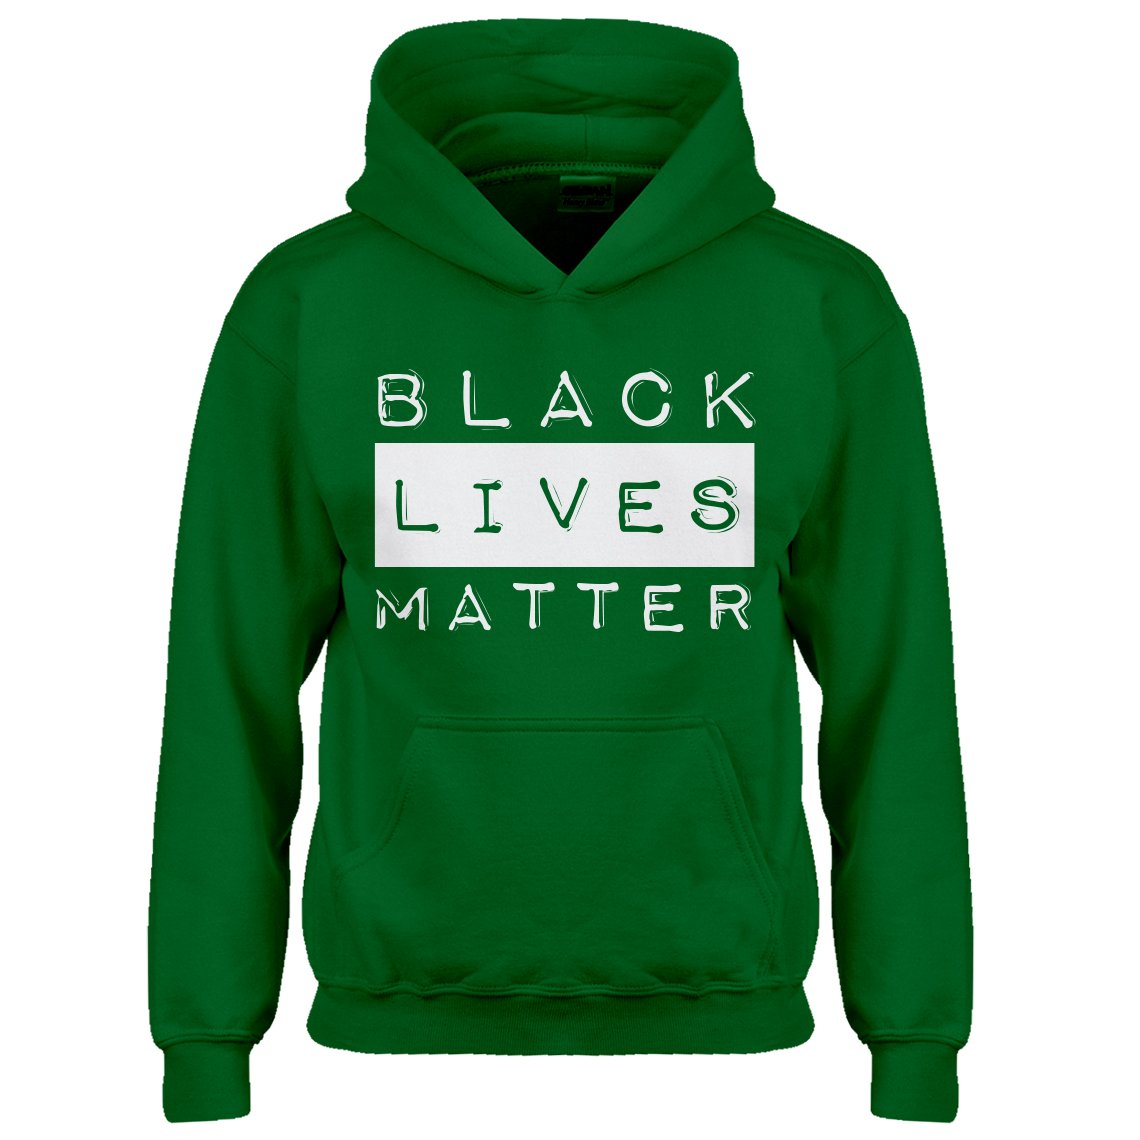 Indica Plateau Youth Black Lives Matter Activism Kids Hoodie 3244-Z